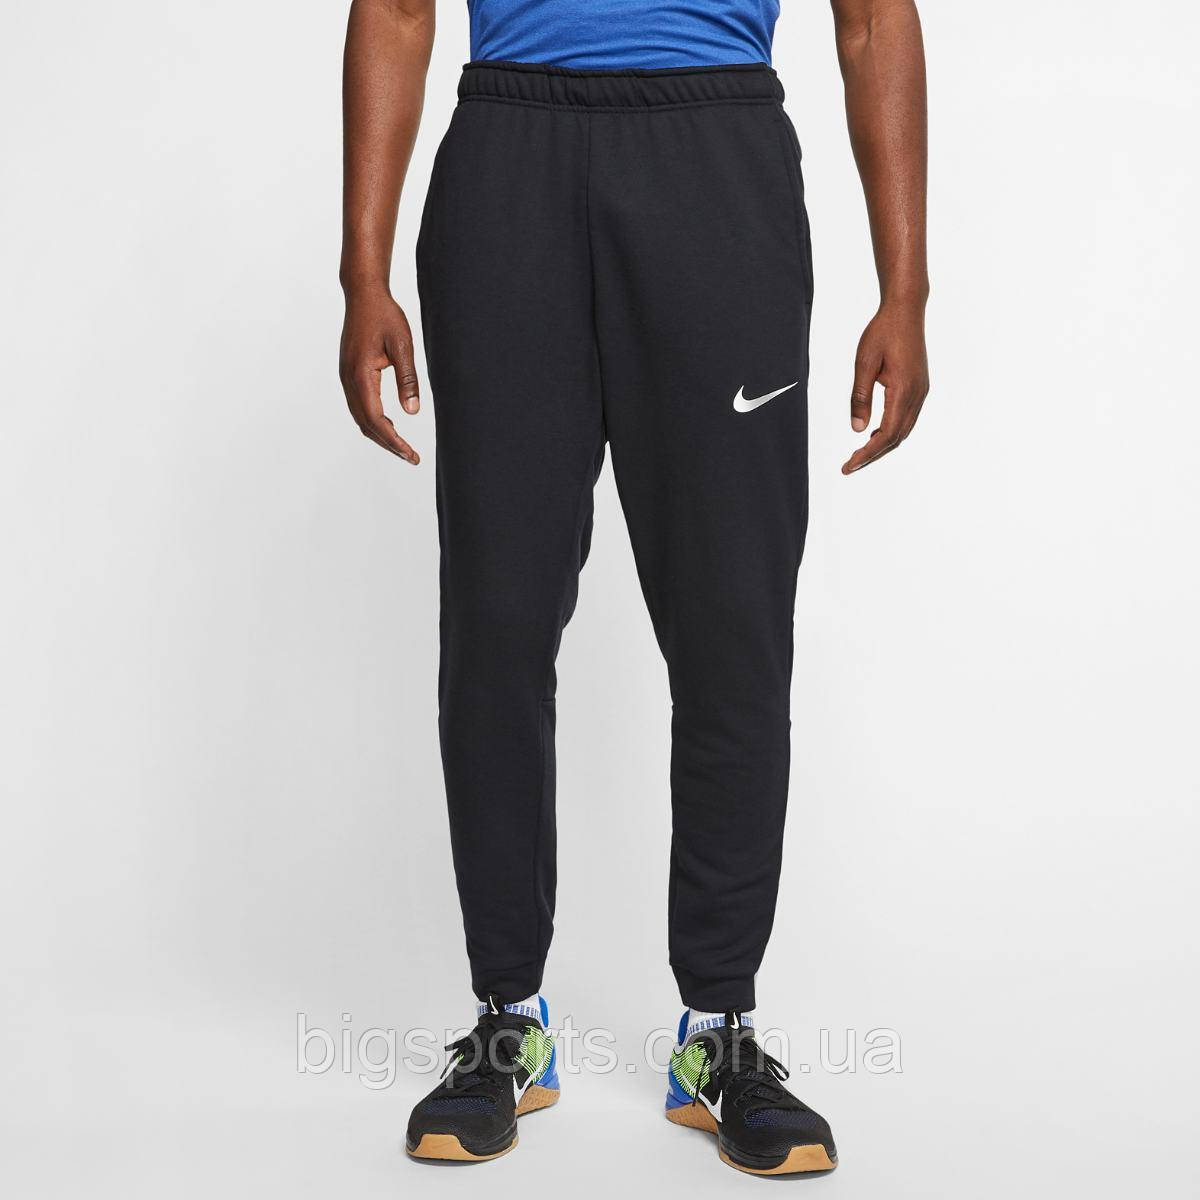 Штаны муж. Nike M Nk Dry Pant Taper Fleece (арт.  CJ4312-010)